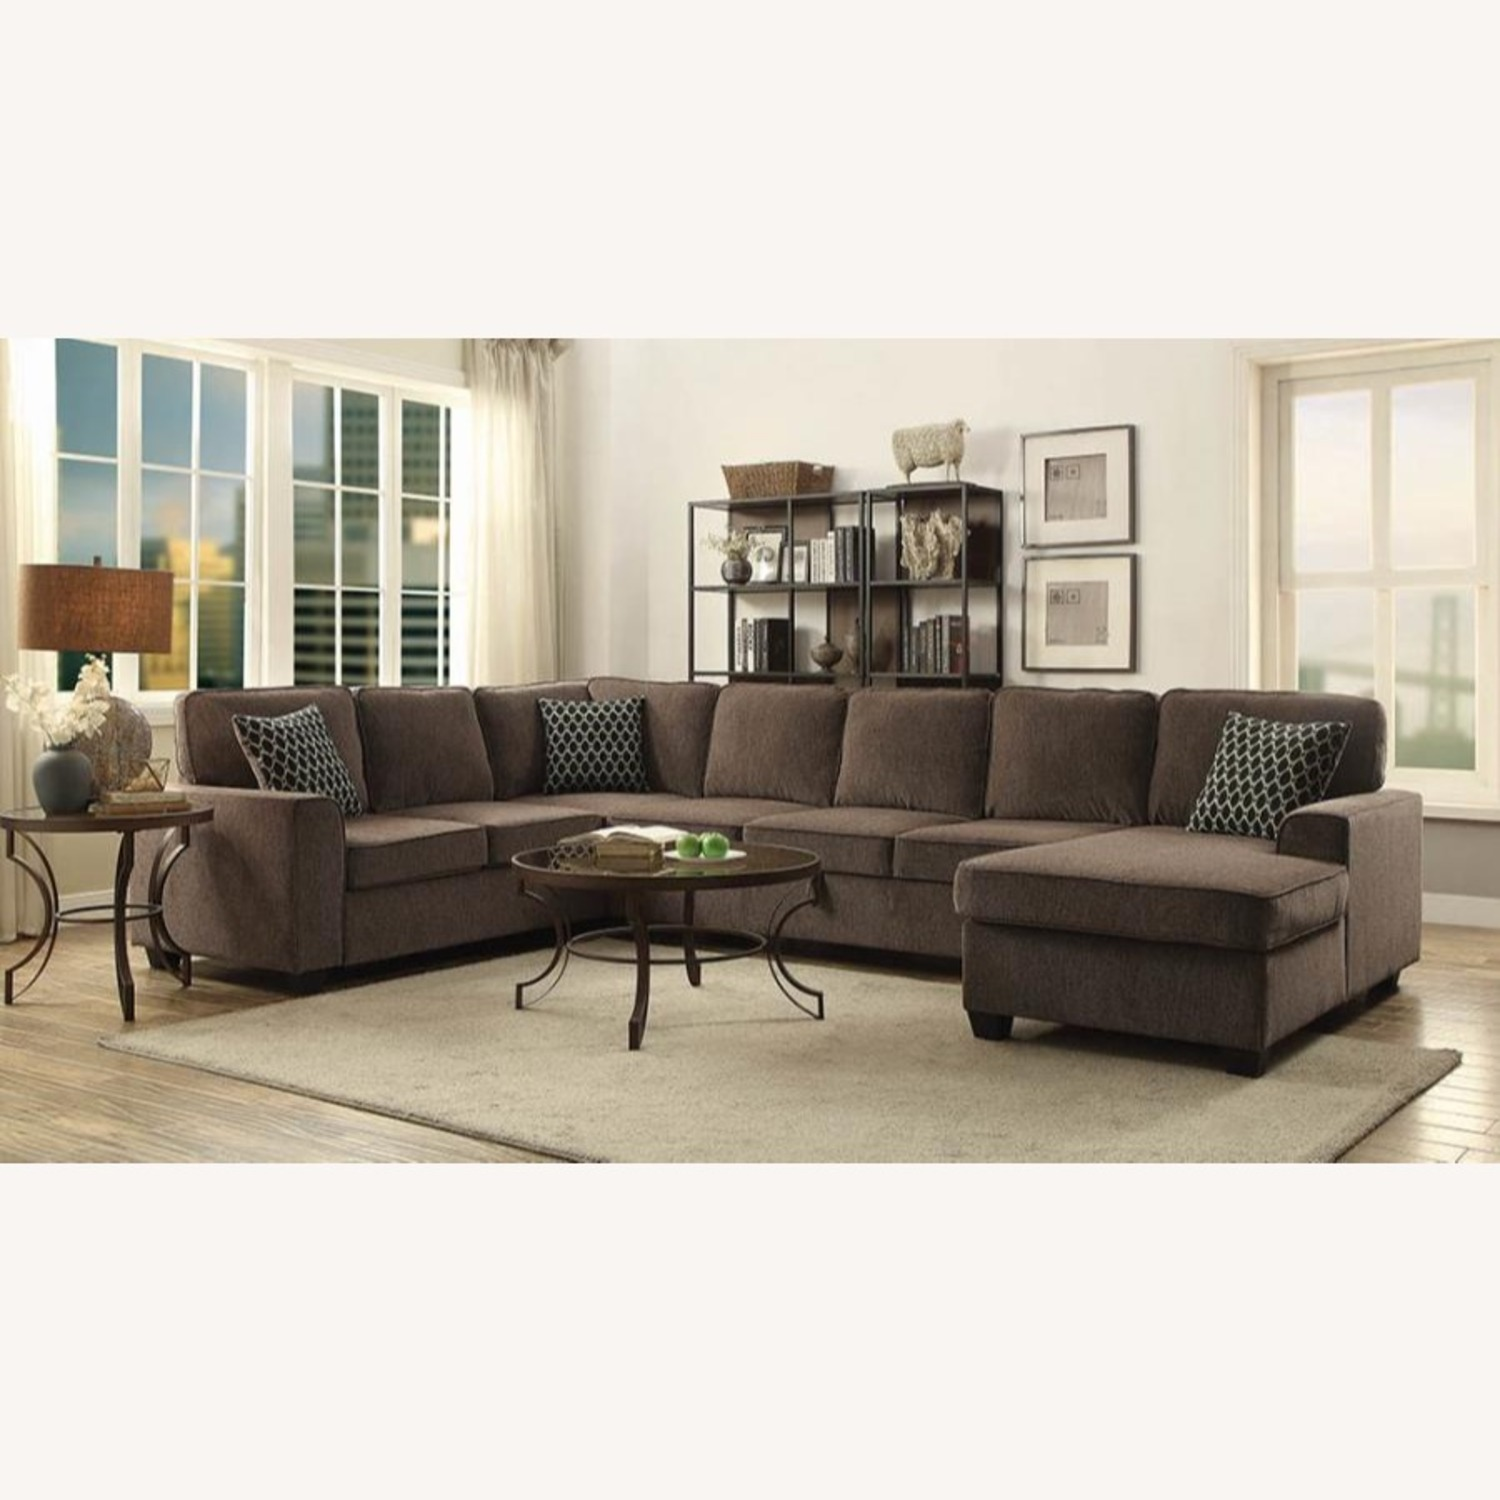 Sectional In Multi-Tonal Brown Chenille Upholstery - image-9